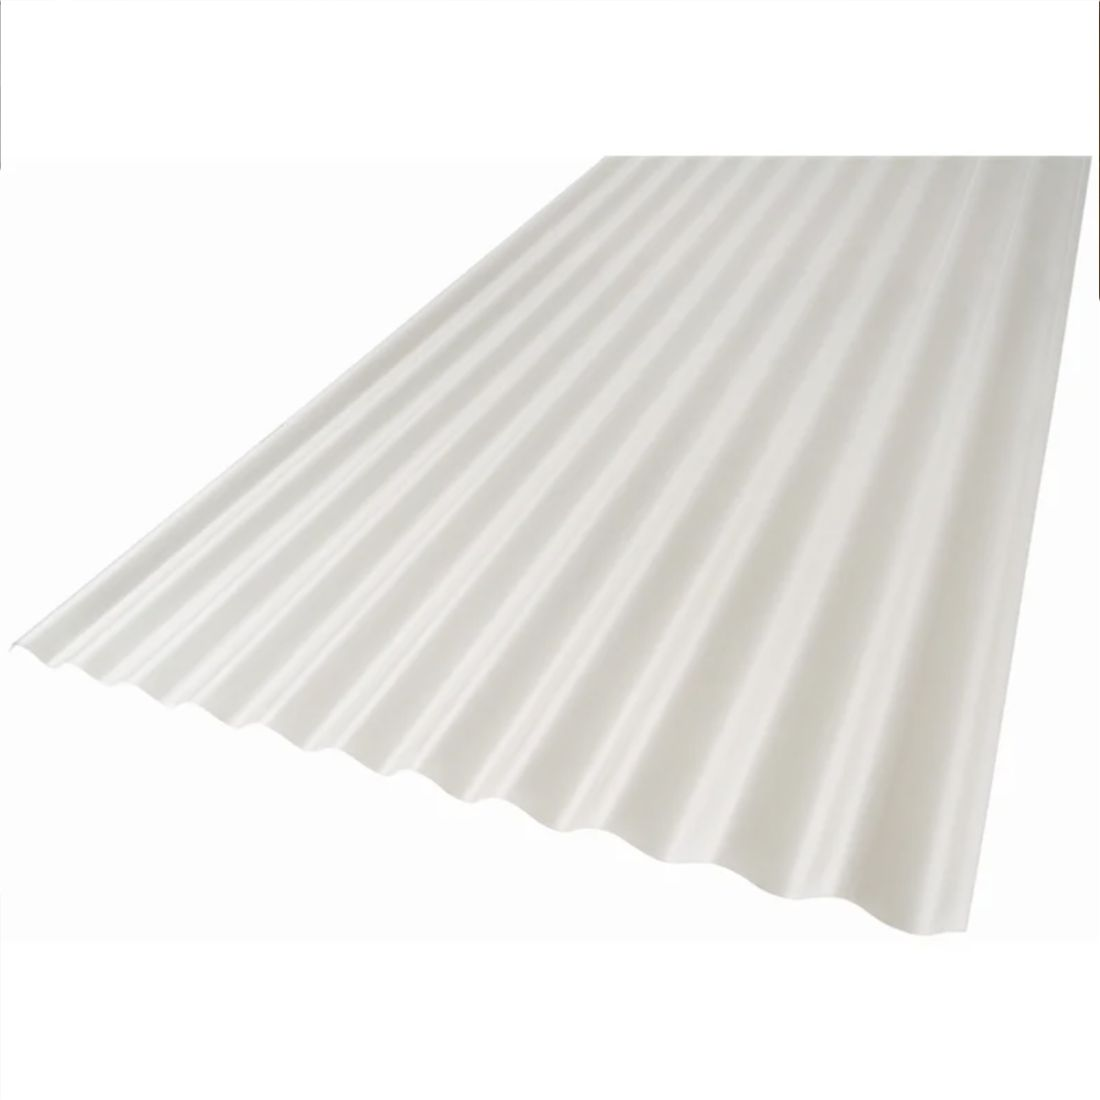 CoolTech Corrugated Ice 3000 x 860mm